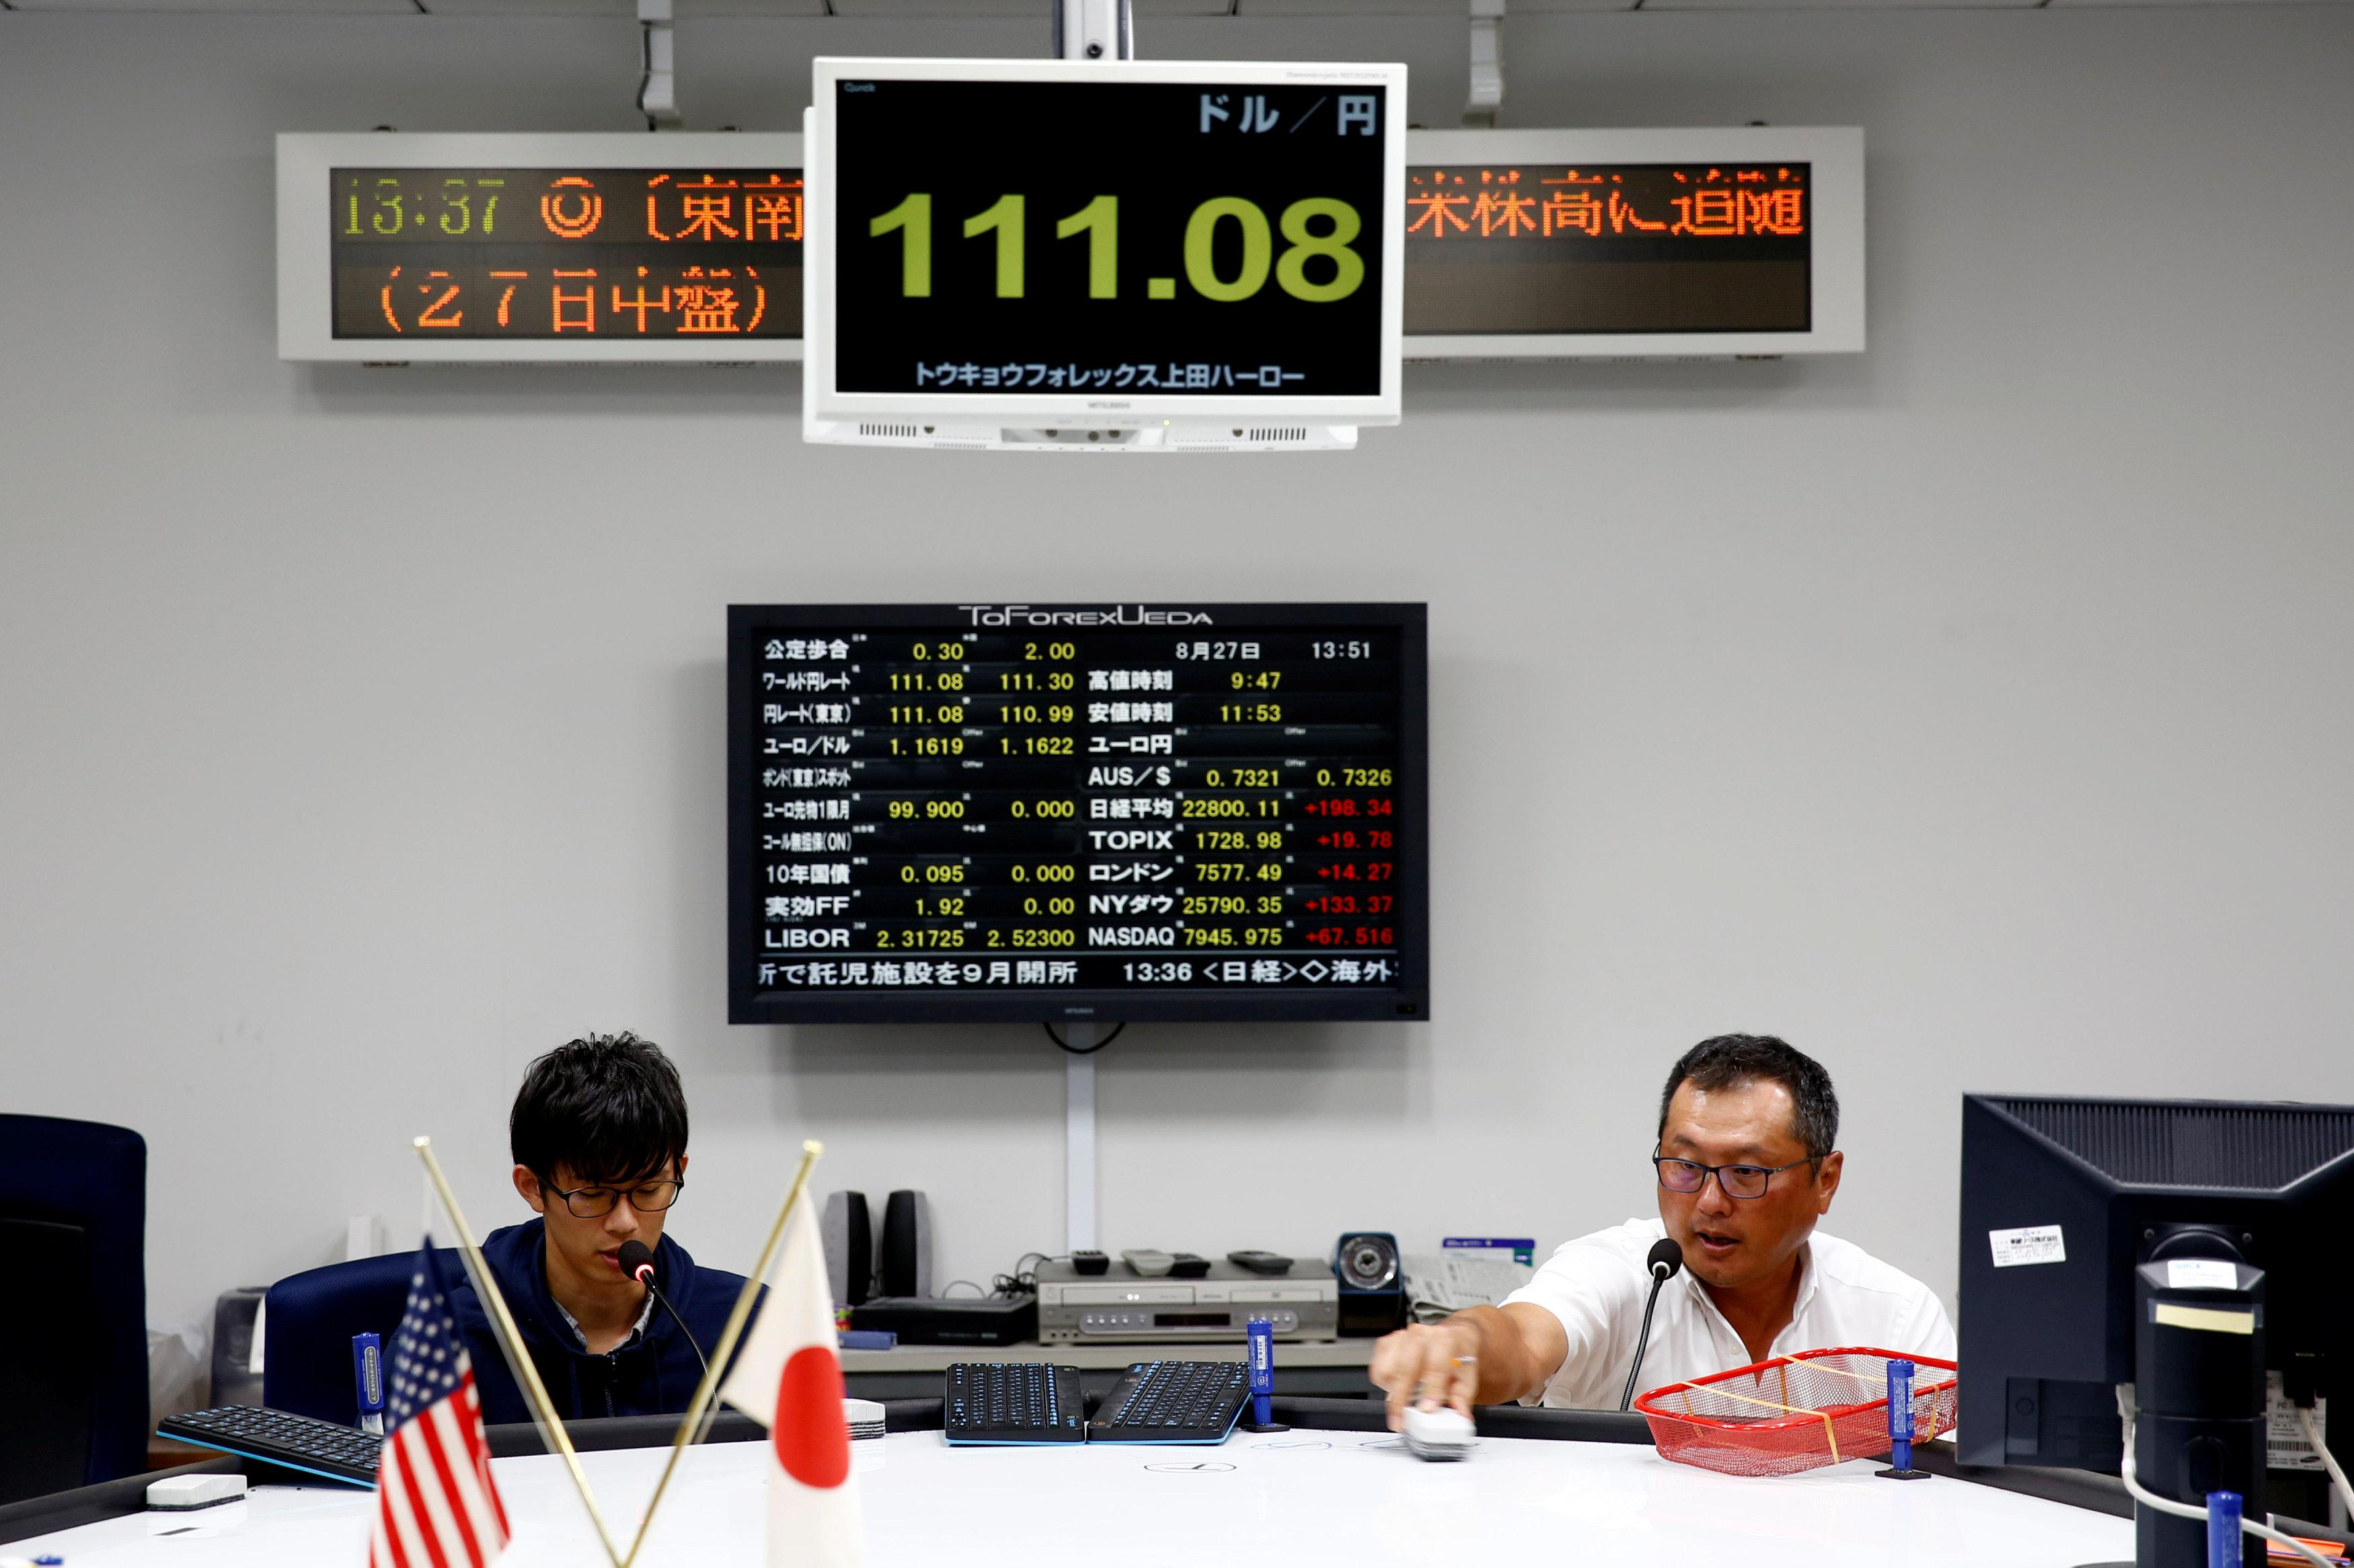 Tsutomu Fukasawa (R), a foreign exchange dealer, works with a colleague at Tokyo Forex & Ueda Harlow, almost 10 years on from the collapse of Lehman Brothers, in Tokyo, Japan, August 27, 2018.  Kim Kyung-Hoon